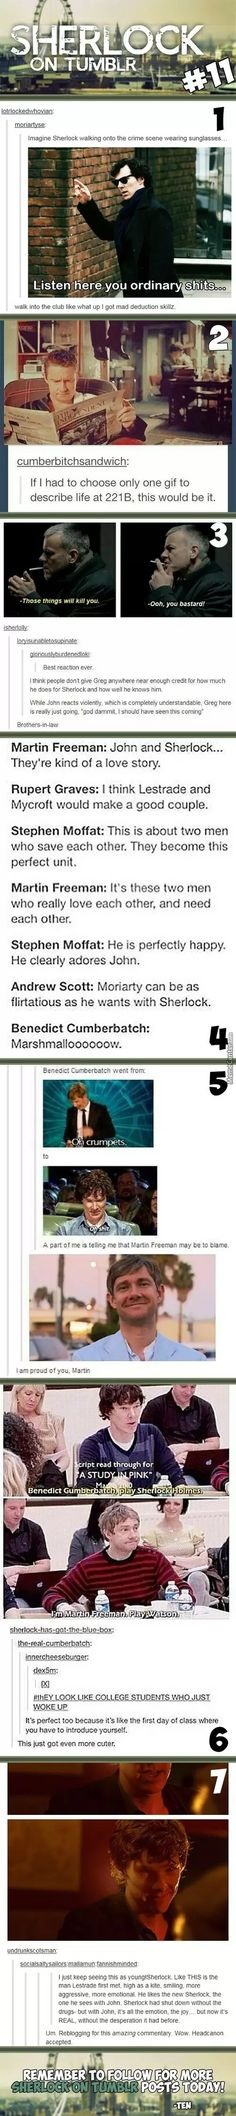 Sherlock On Tumblr #11